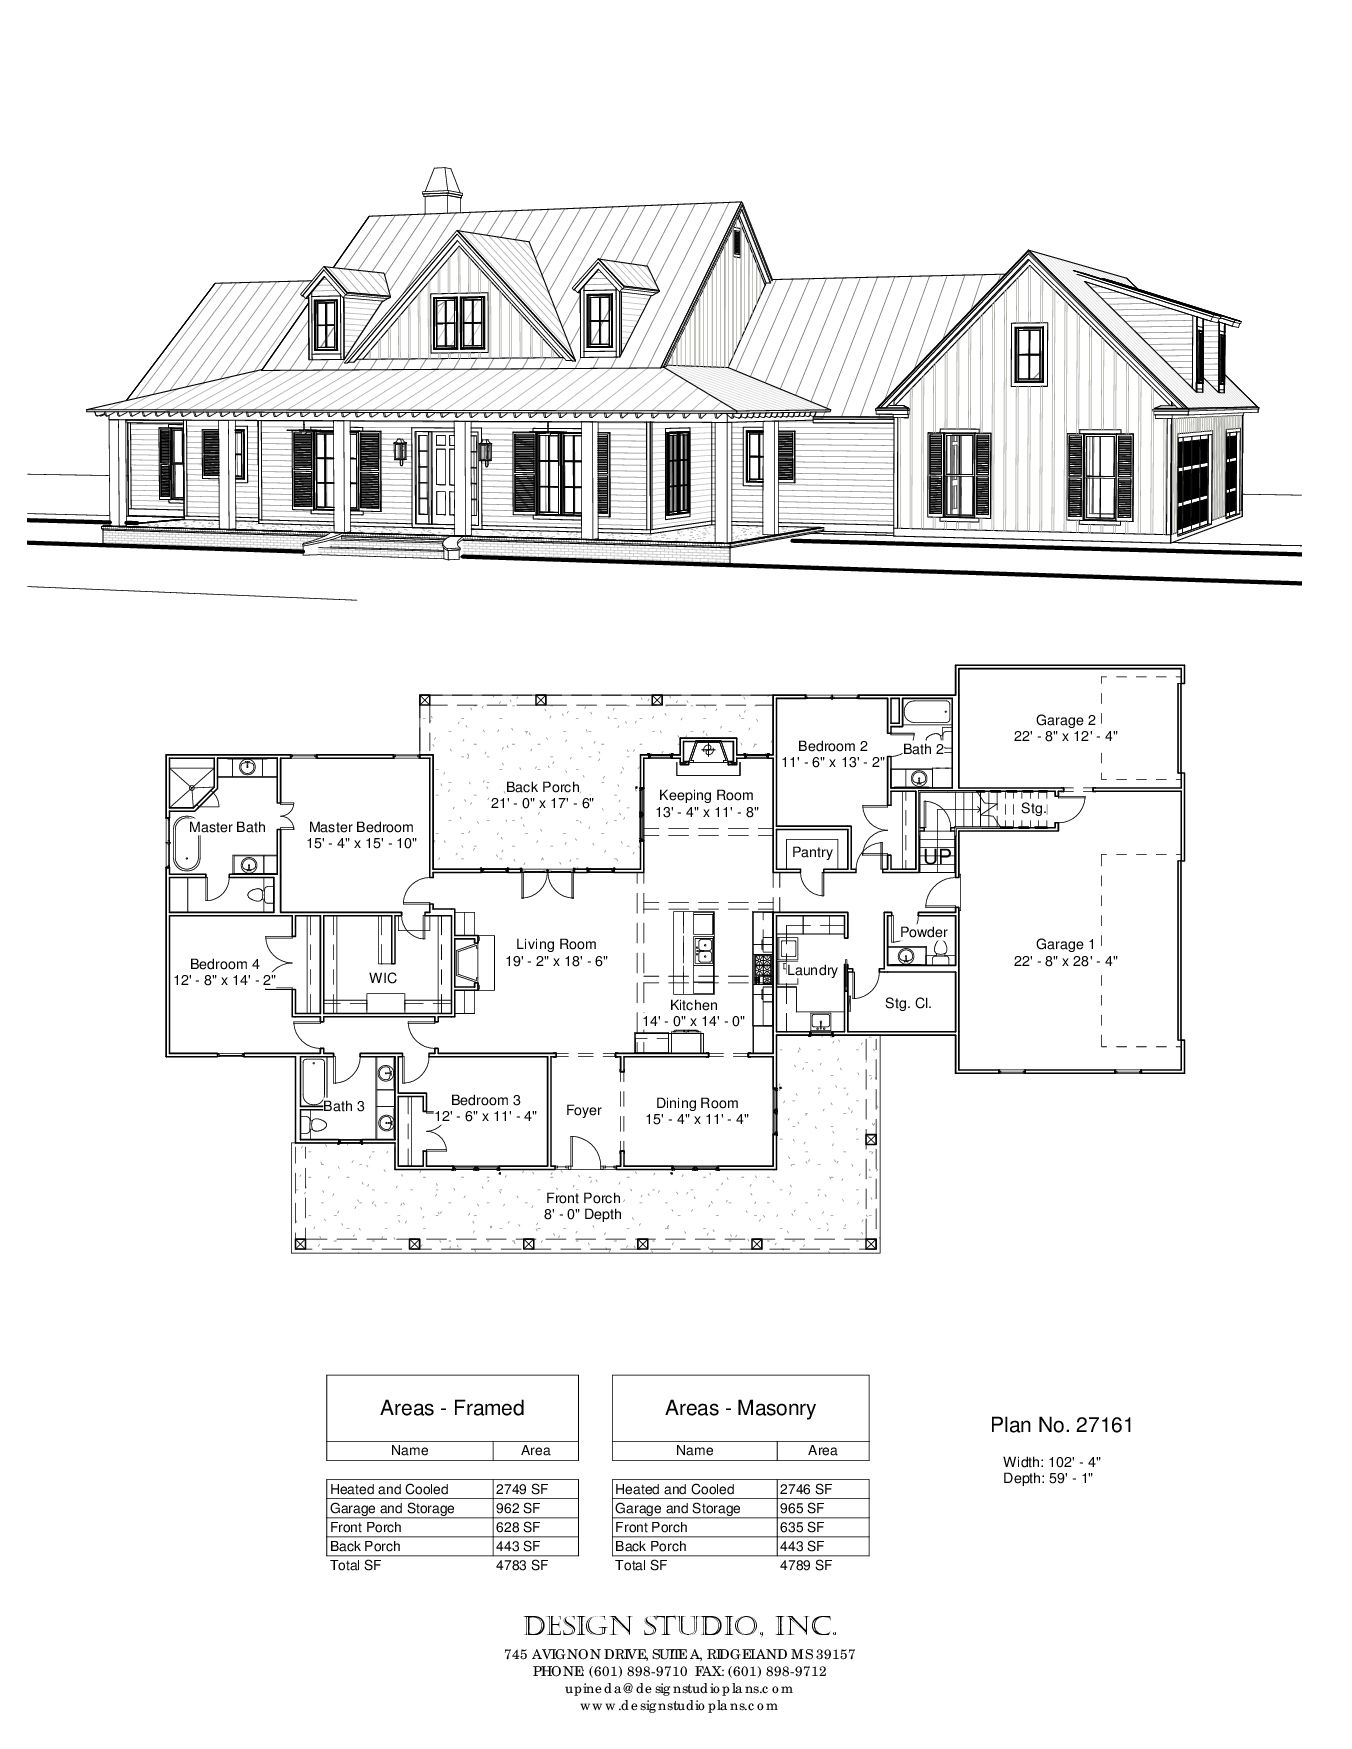 Nd New House Plans on ms house plans, iowa house plans, uk house plans, new jersey house plans, la house plans, oklahoma house plans, new york house plans, do house plans, mississippi house plans, louisiana house plans, montana house plans, nc house plans, state house plans, california house plans, nu house plans, ak house plans, hg house plans, maryland house plans, bc house plans, michigan house plans,